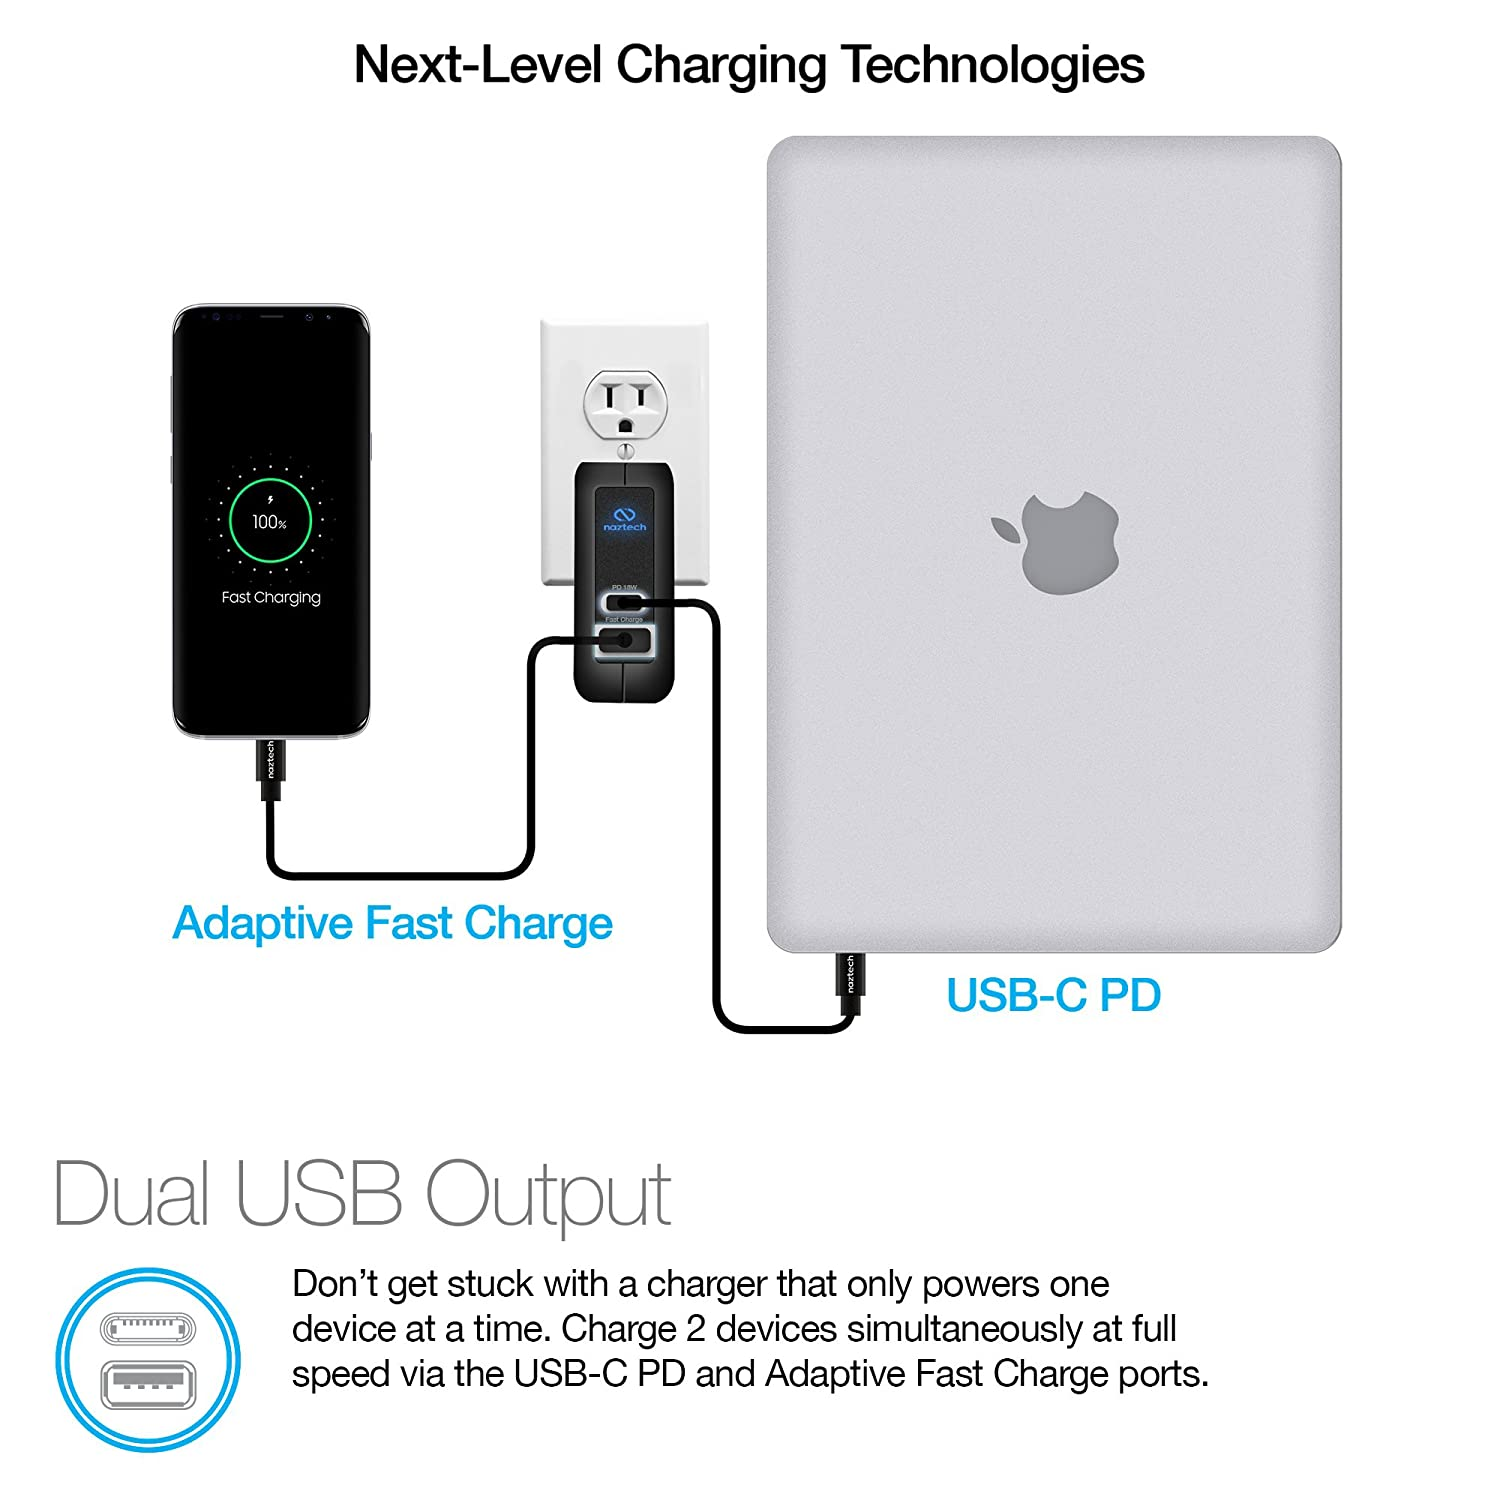 Amazon.com: Naztech 18W USB-C PD + Adaptive Fast Wall Charger - Universal Micro USB, Dual Ports for iPhone X / 8/8 Plus, MacBook,iPad, Samsung S9 / S9+ / S8 ...